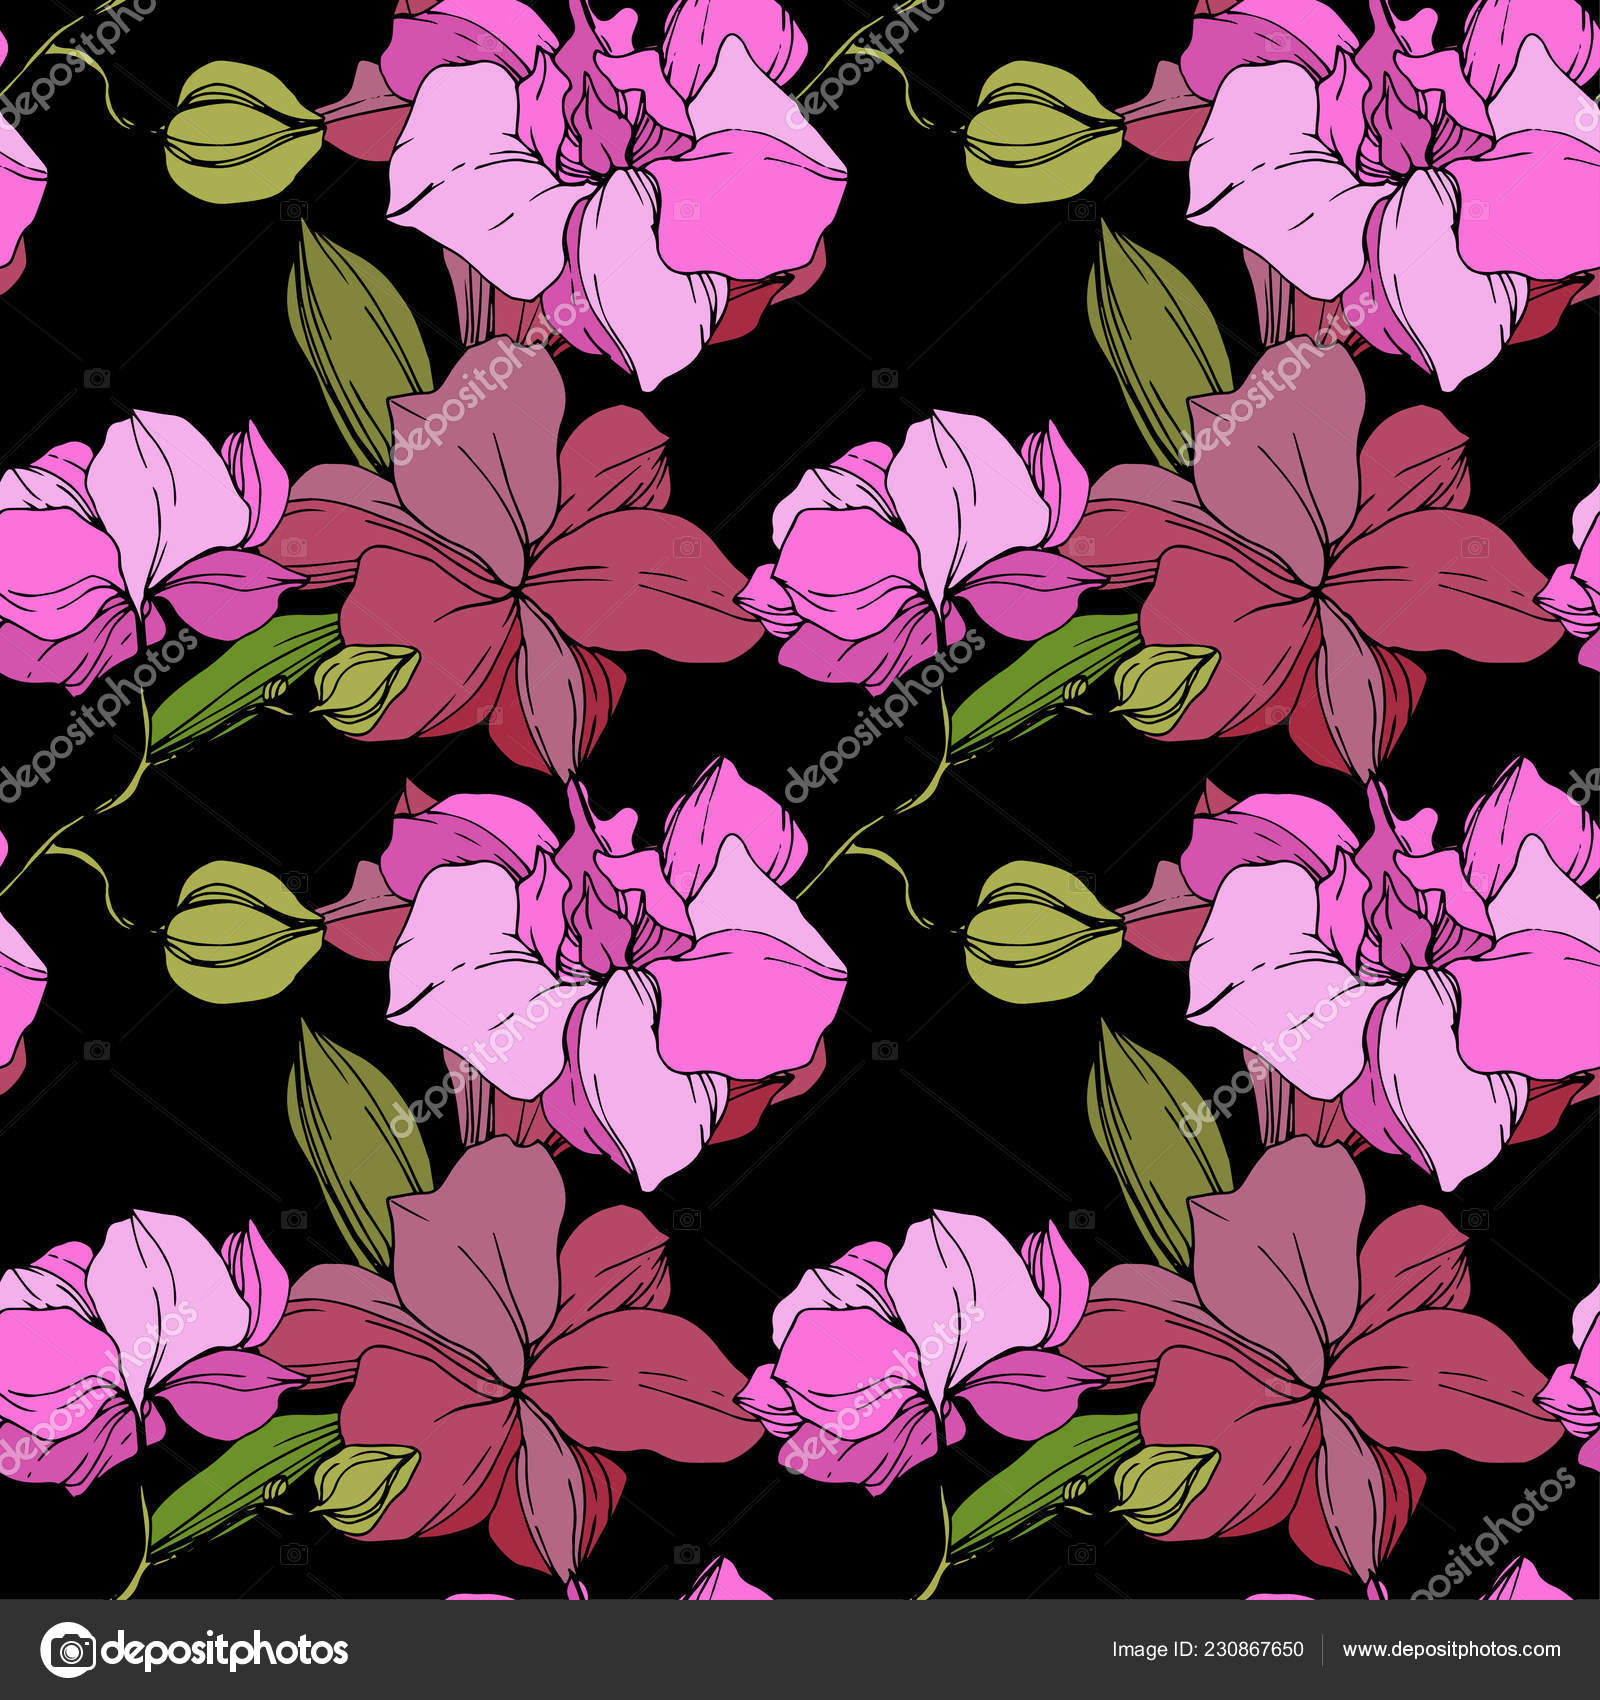 Orchid Hd Wallpaper Beautiful Pink Orchid Flowers Seamless